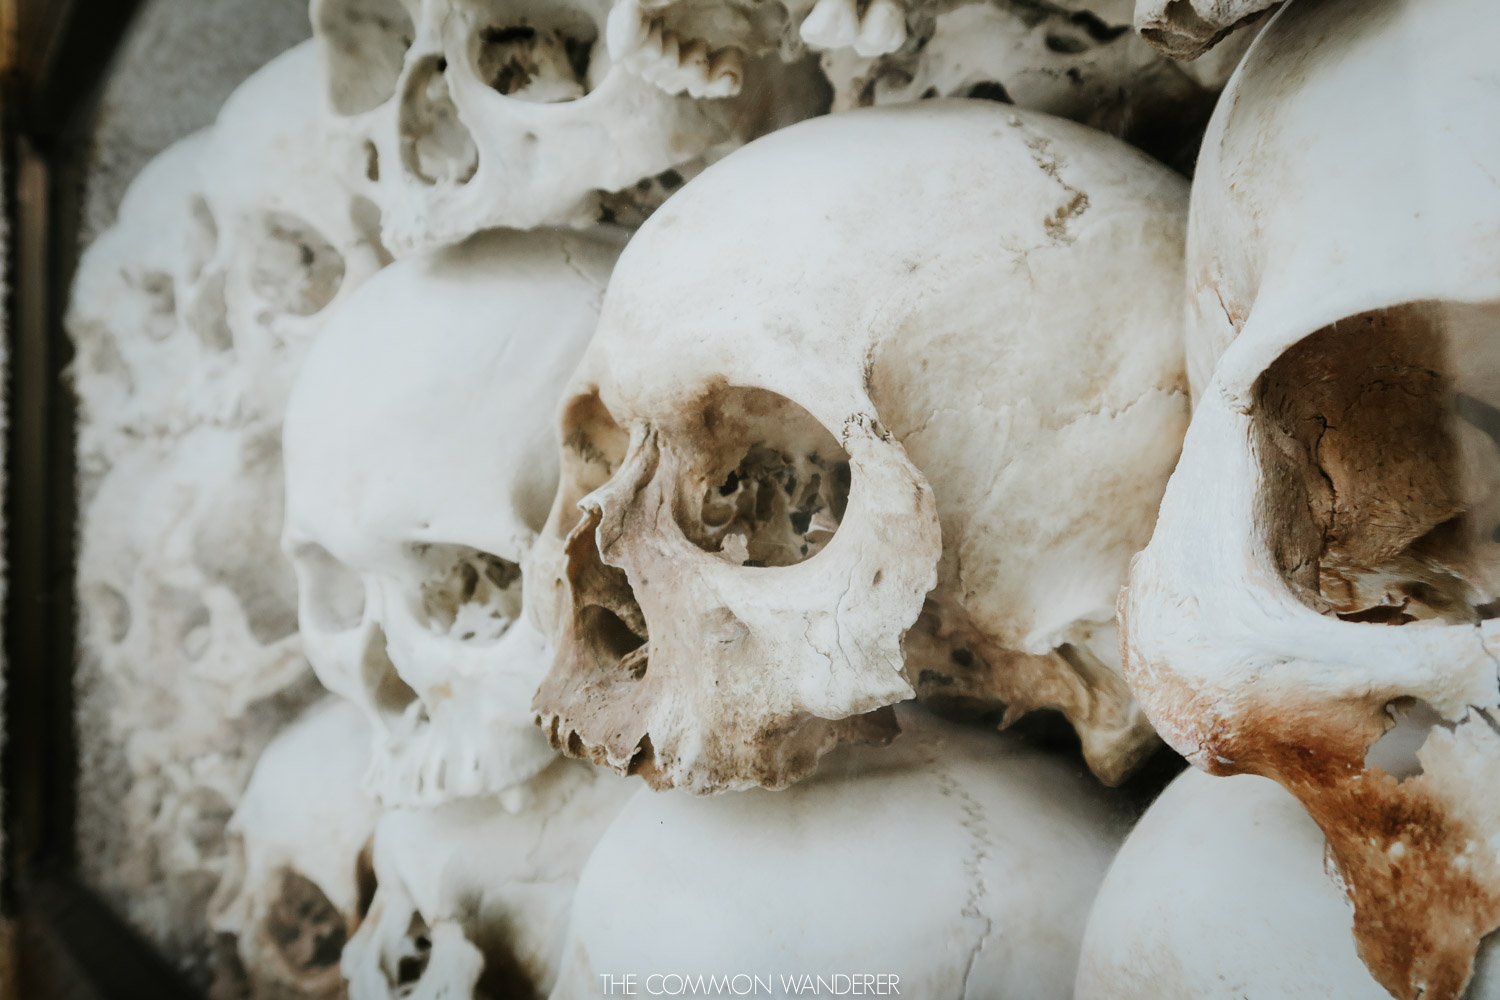 Skulls of Cambodian citizens lines up at Choeung Ek Genocidal Centre, Cambodia